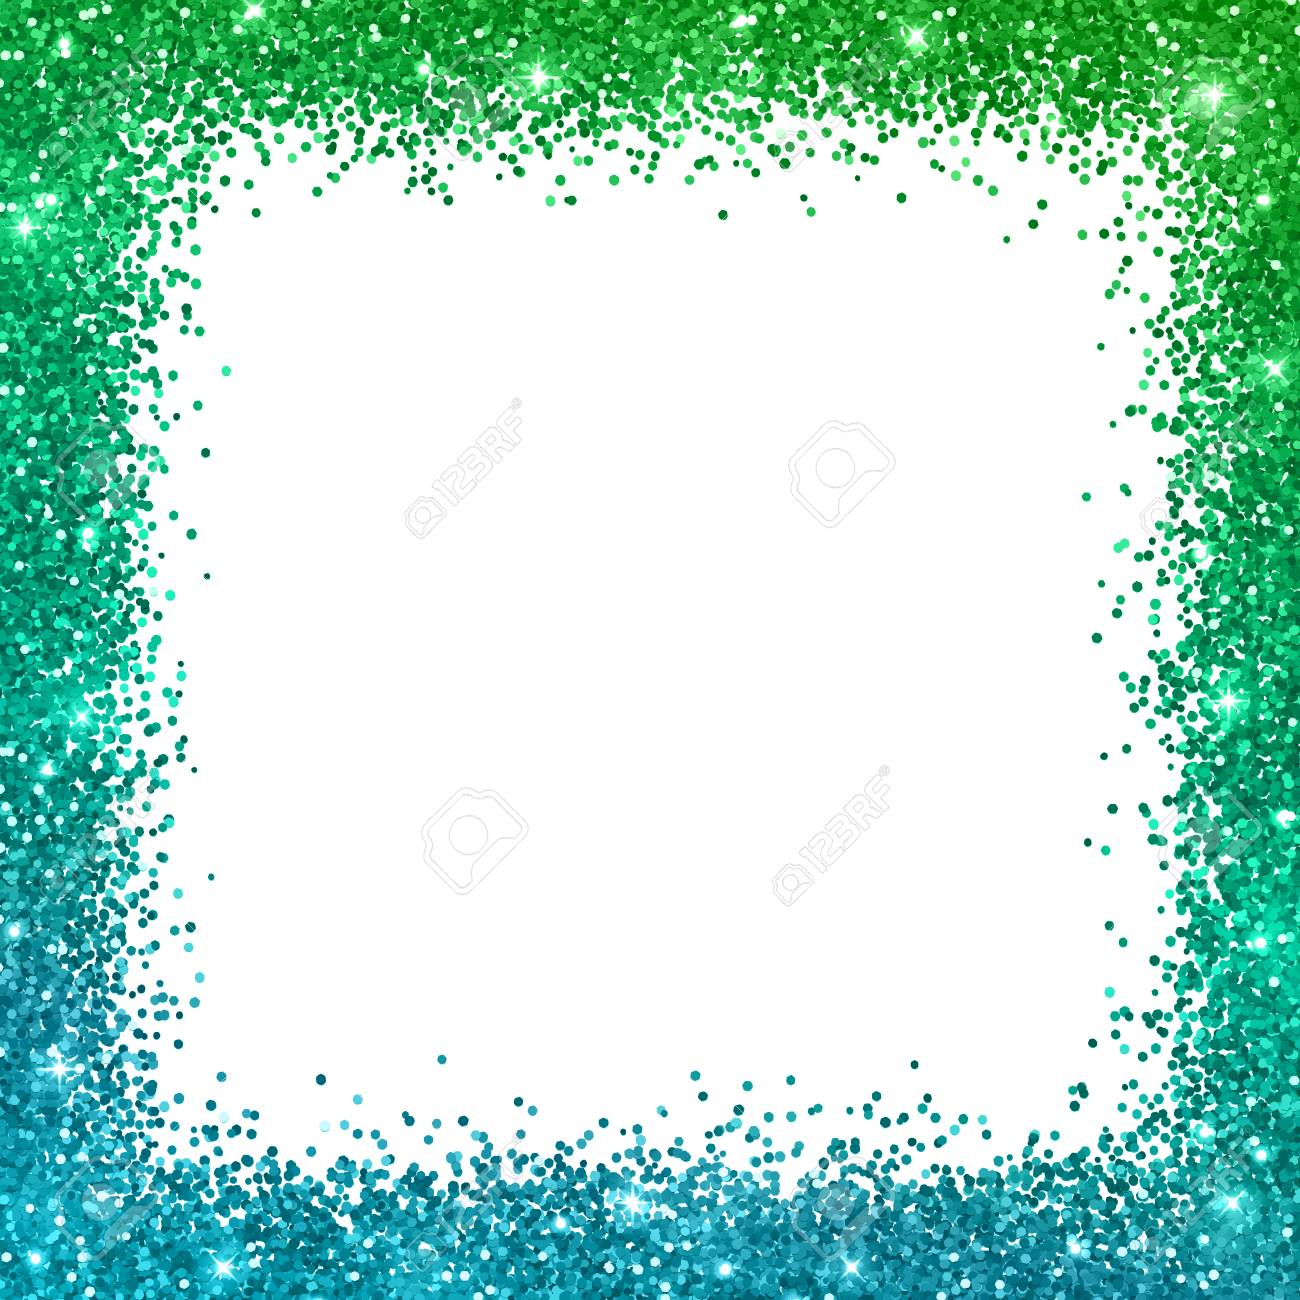 Square Border - Glitter Square Border Frame With Blue Green Color Effect, On ...